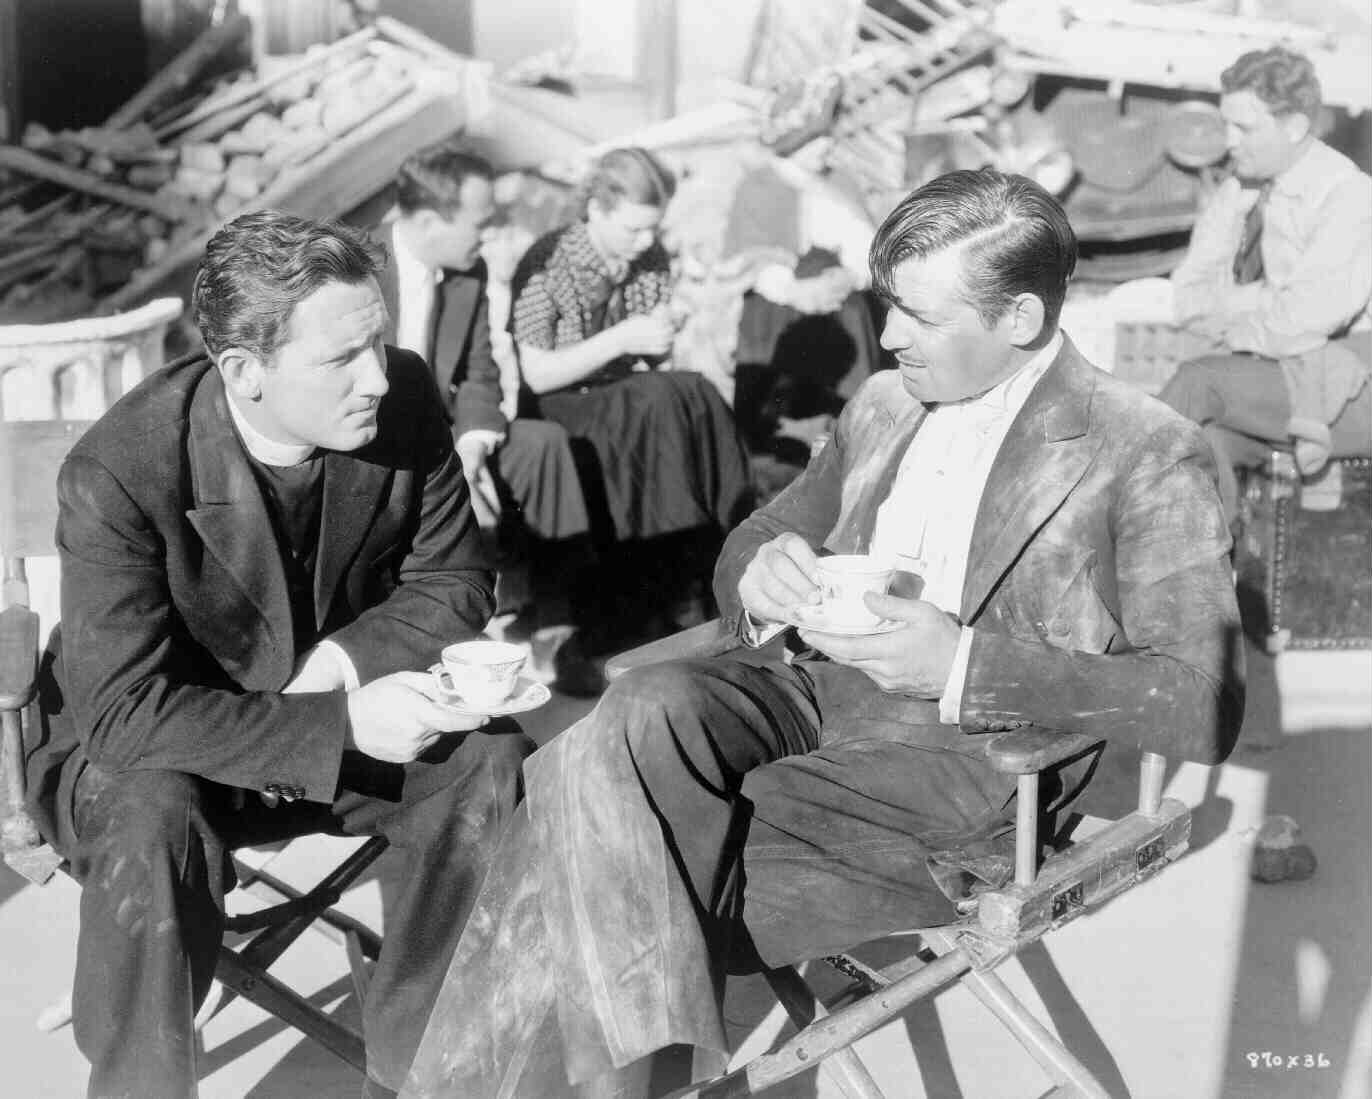 spencer tracy and clark gable on a break from filming the earthquake sequence